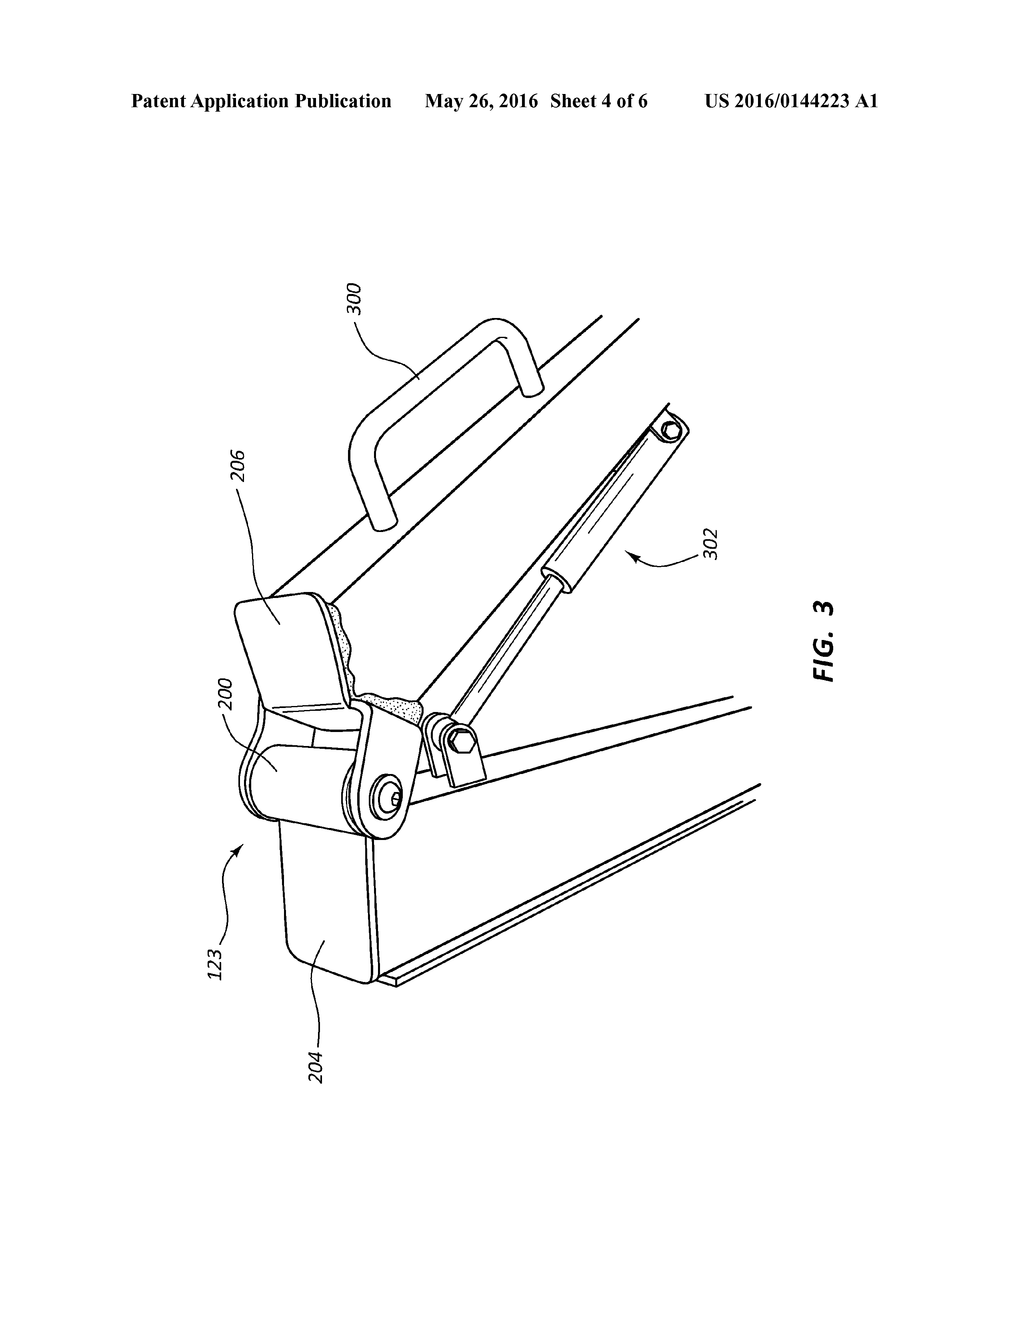 Rowing Machine Having A Beam With A Hinge Joint Diagram Schematic